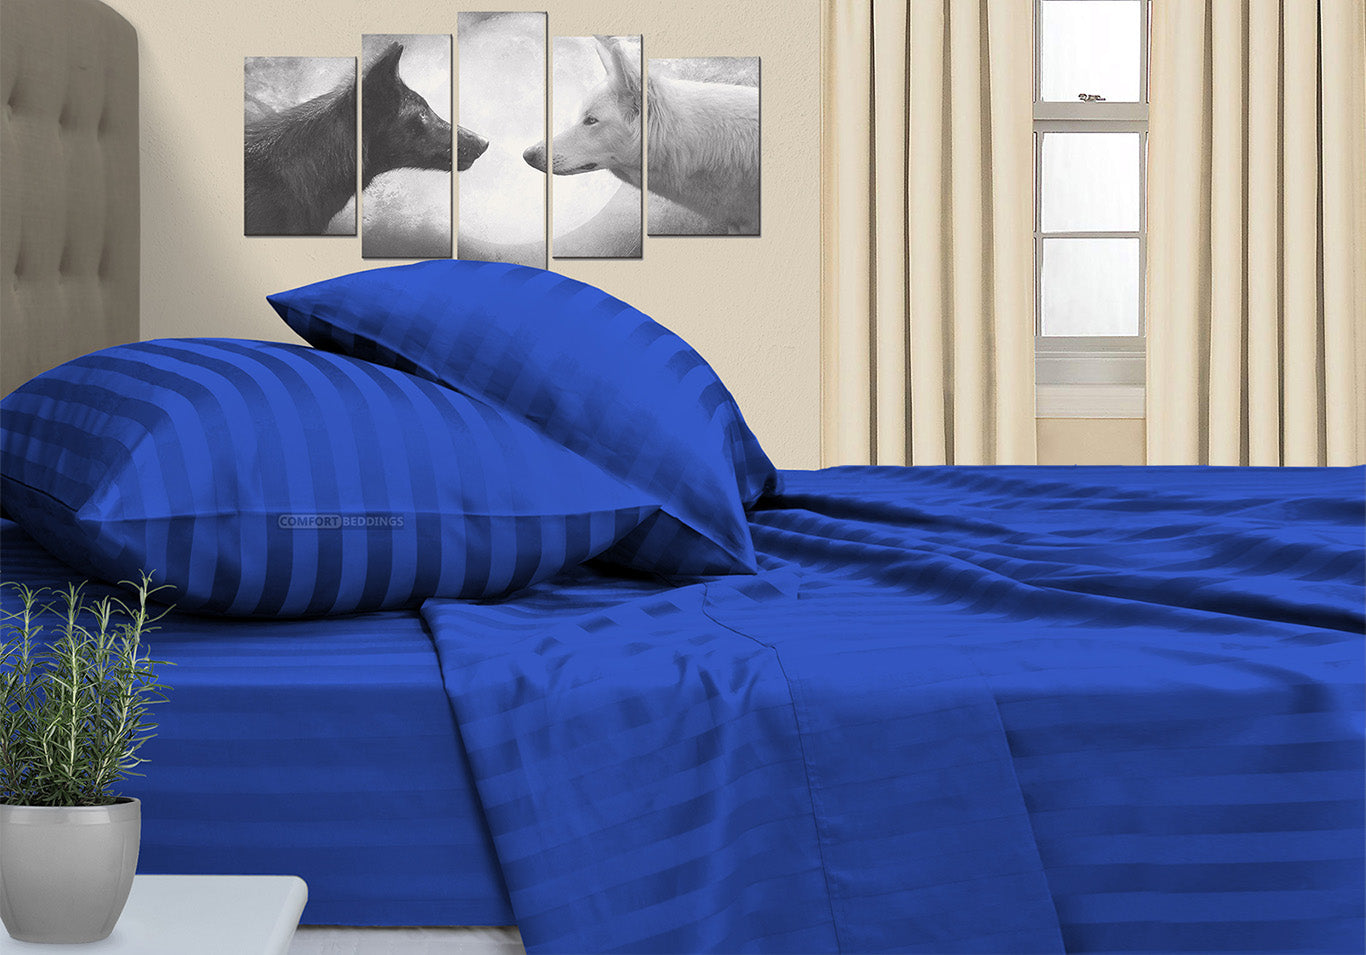 Luxurious Royal Blue Striped RV Sheet Set